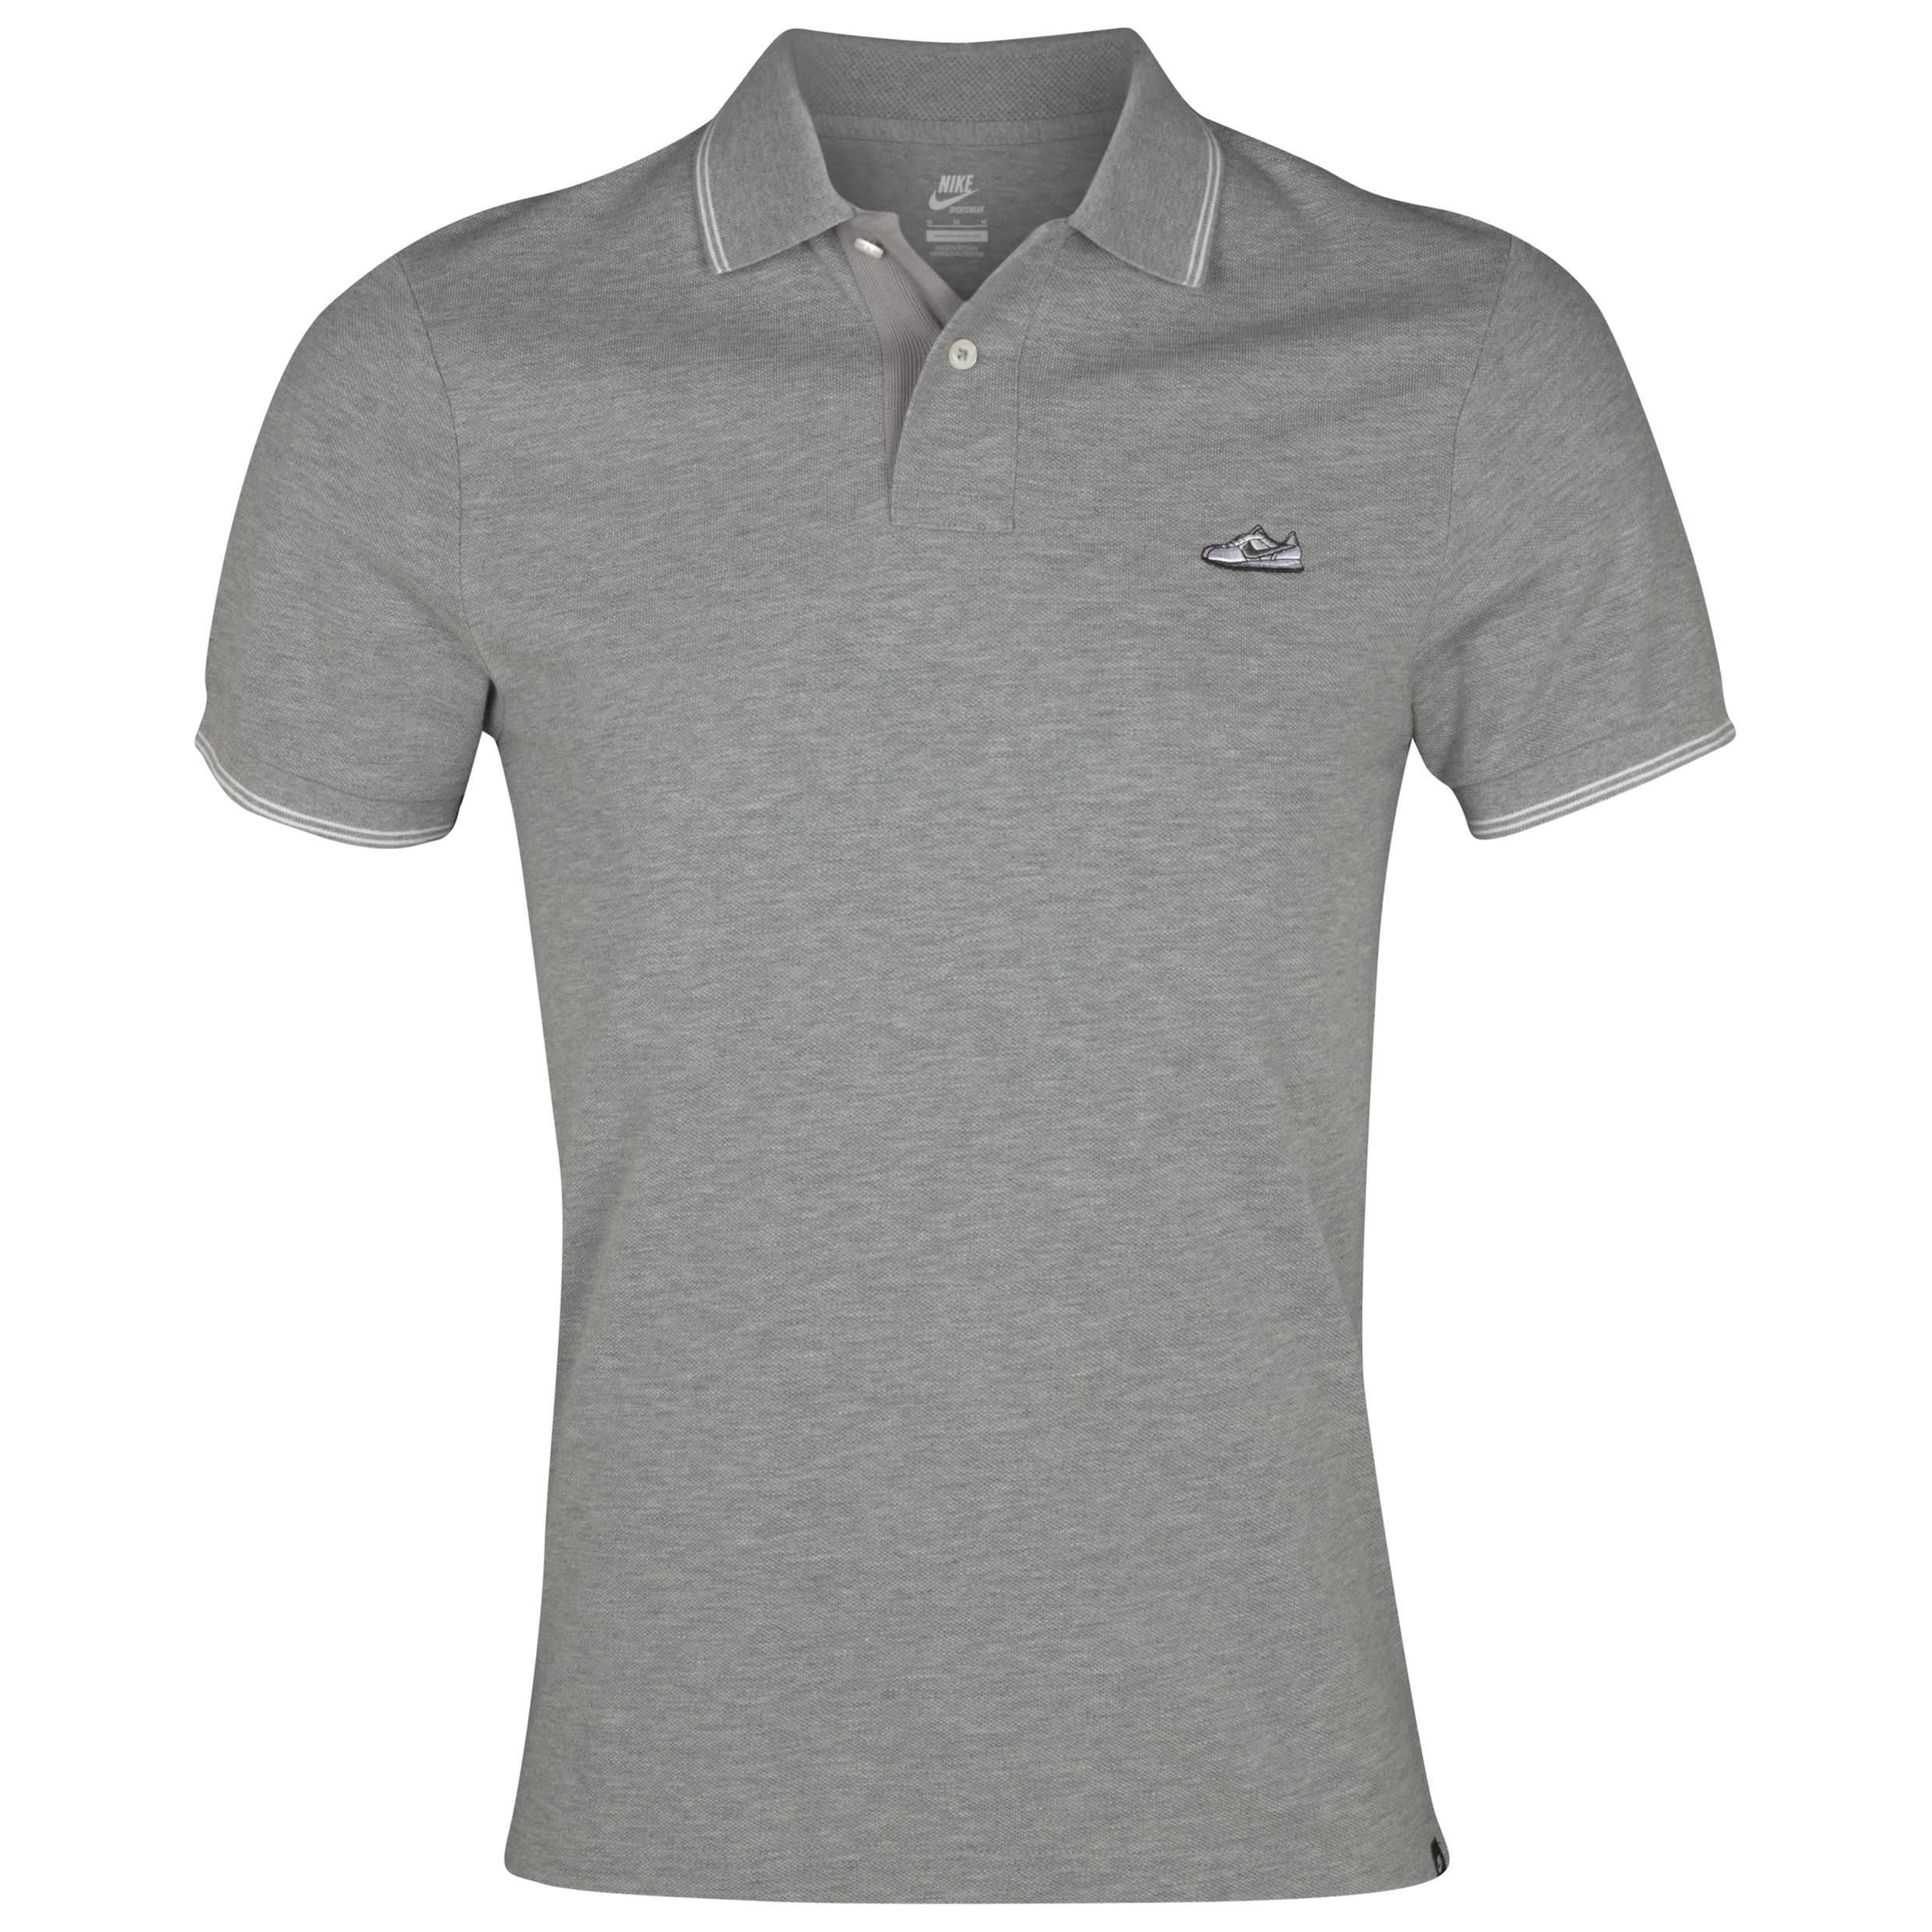 Nike Grand Slam Shoe Polo - Dark Grey Heather/White